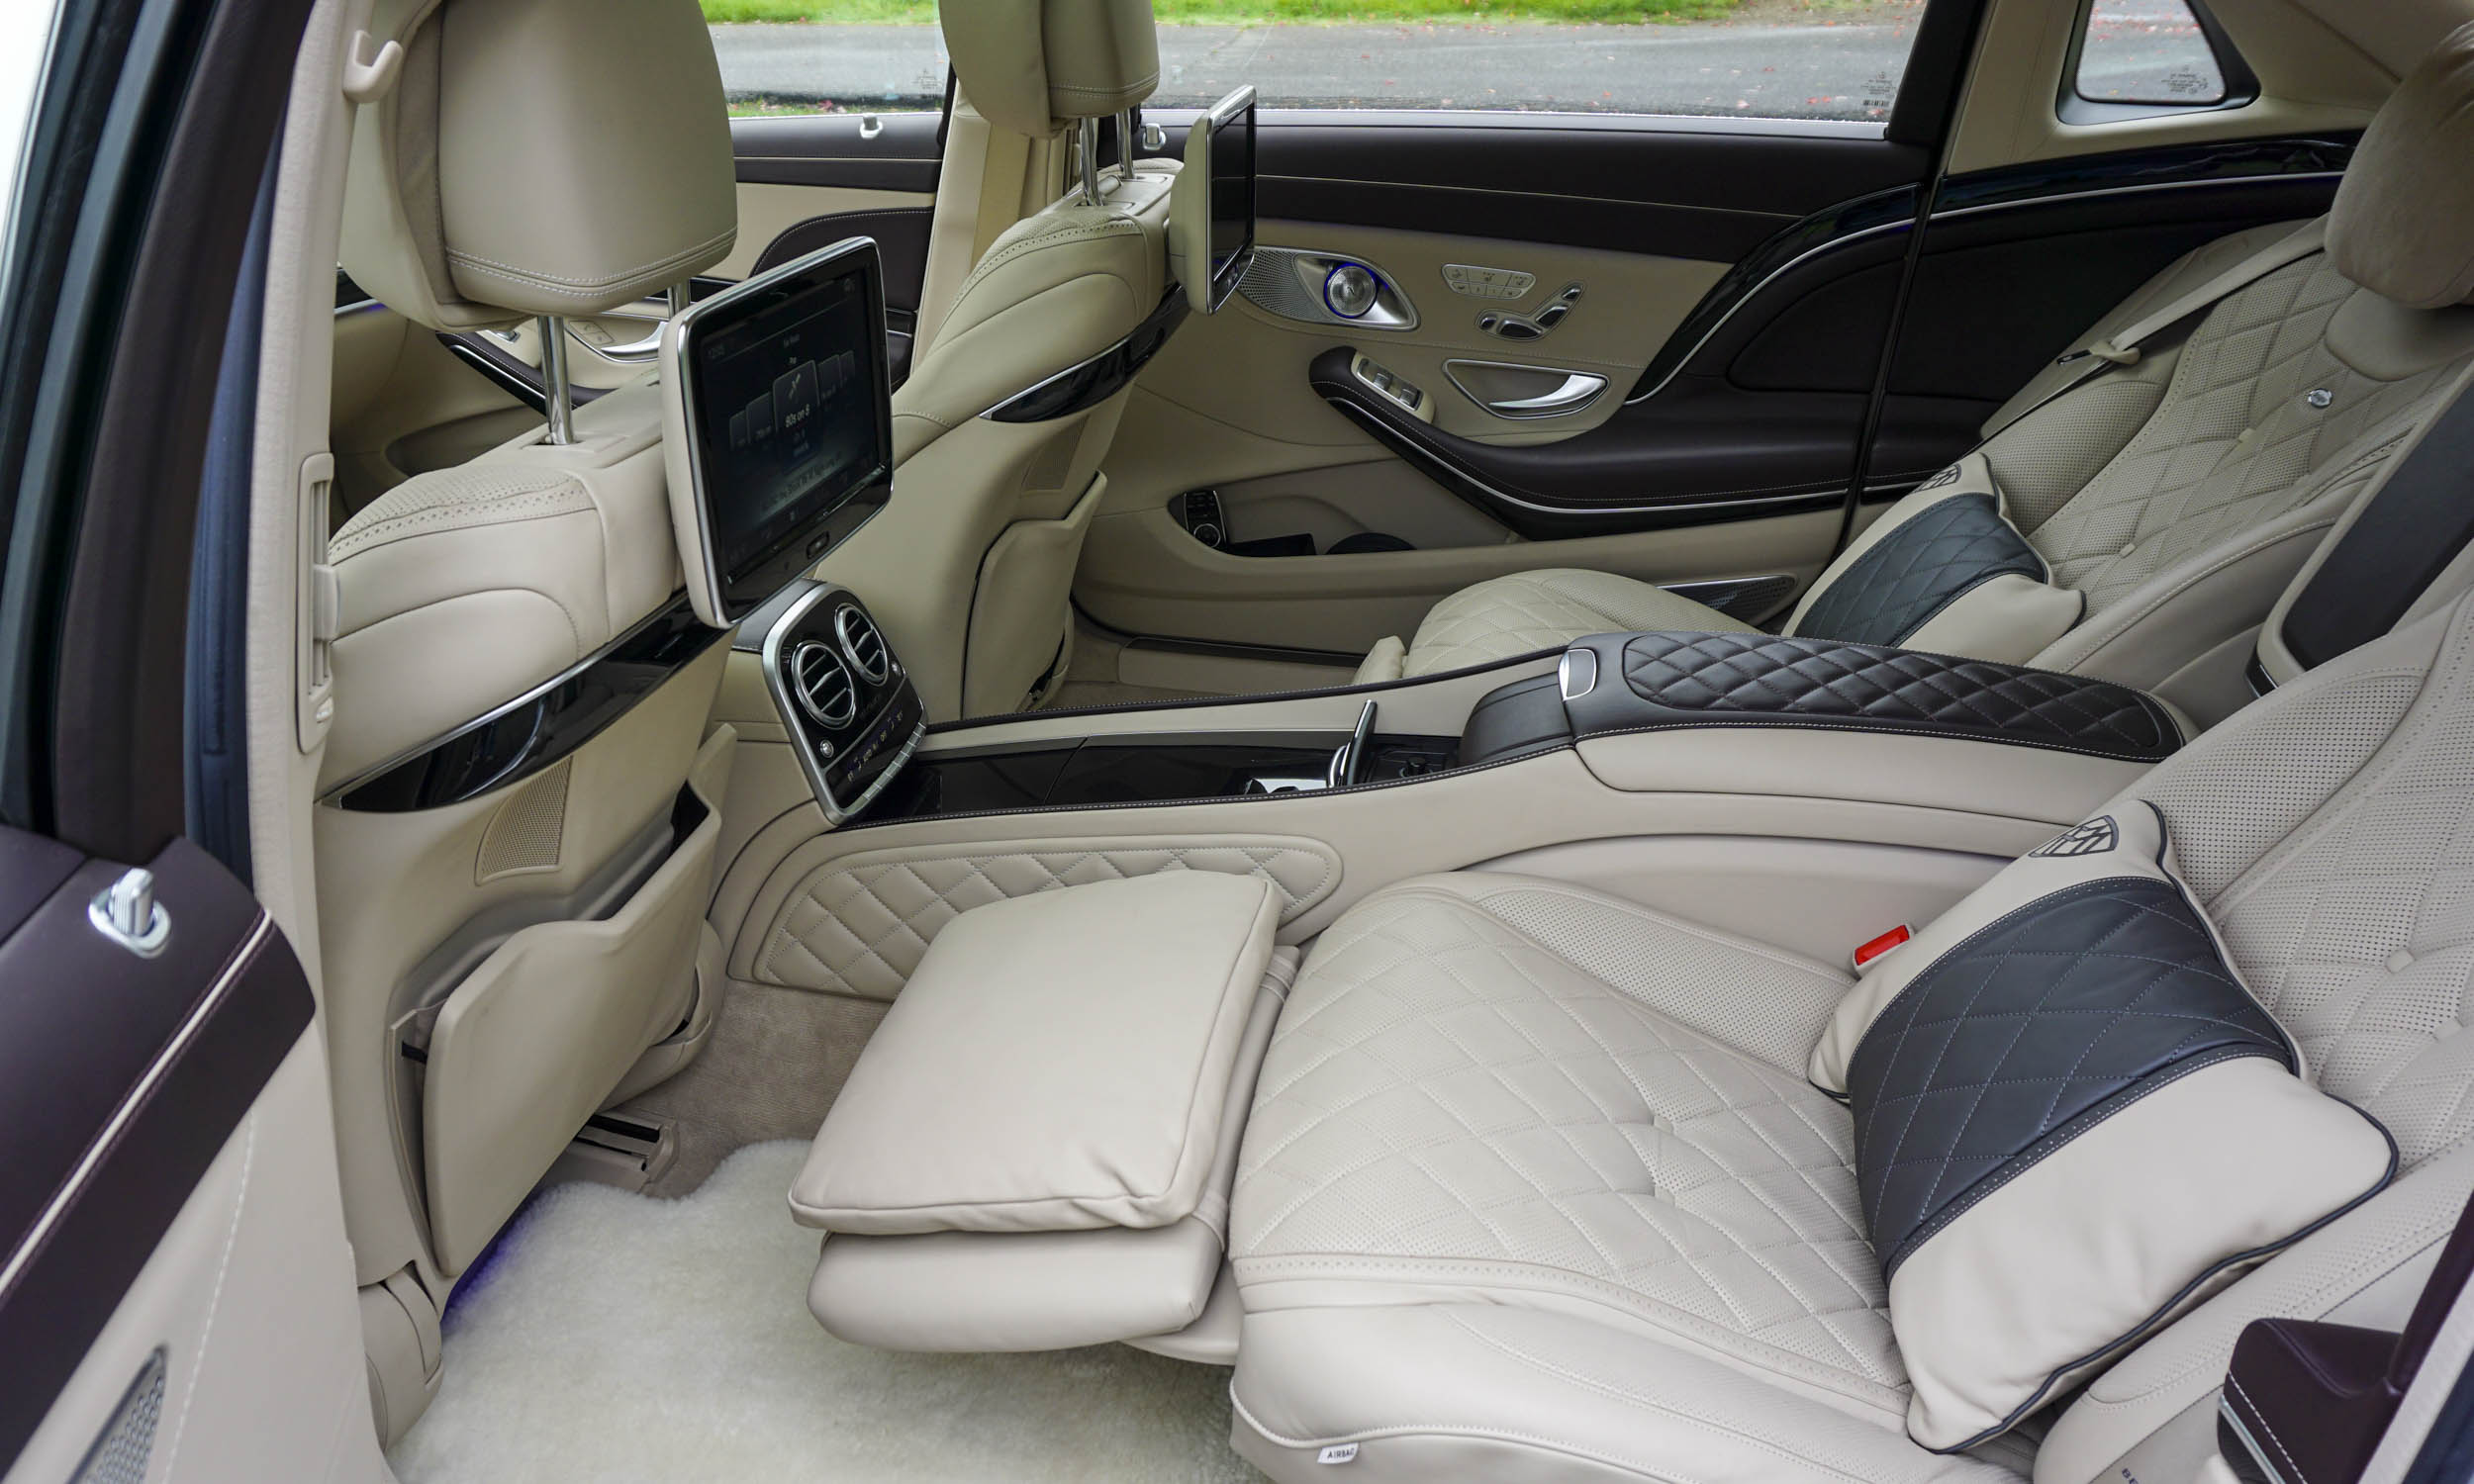 Mercedes-Maybach Backseat